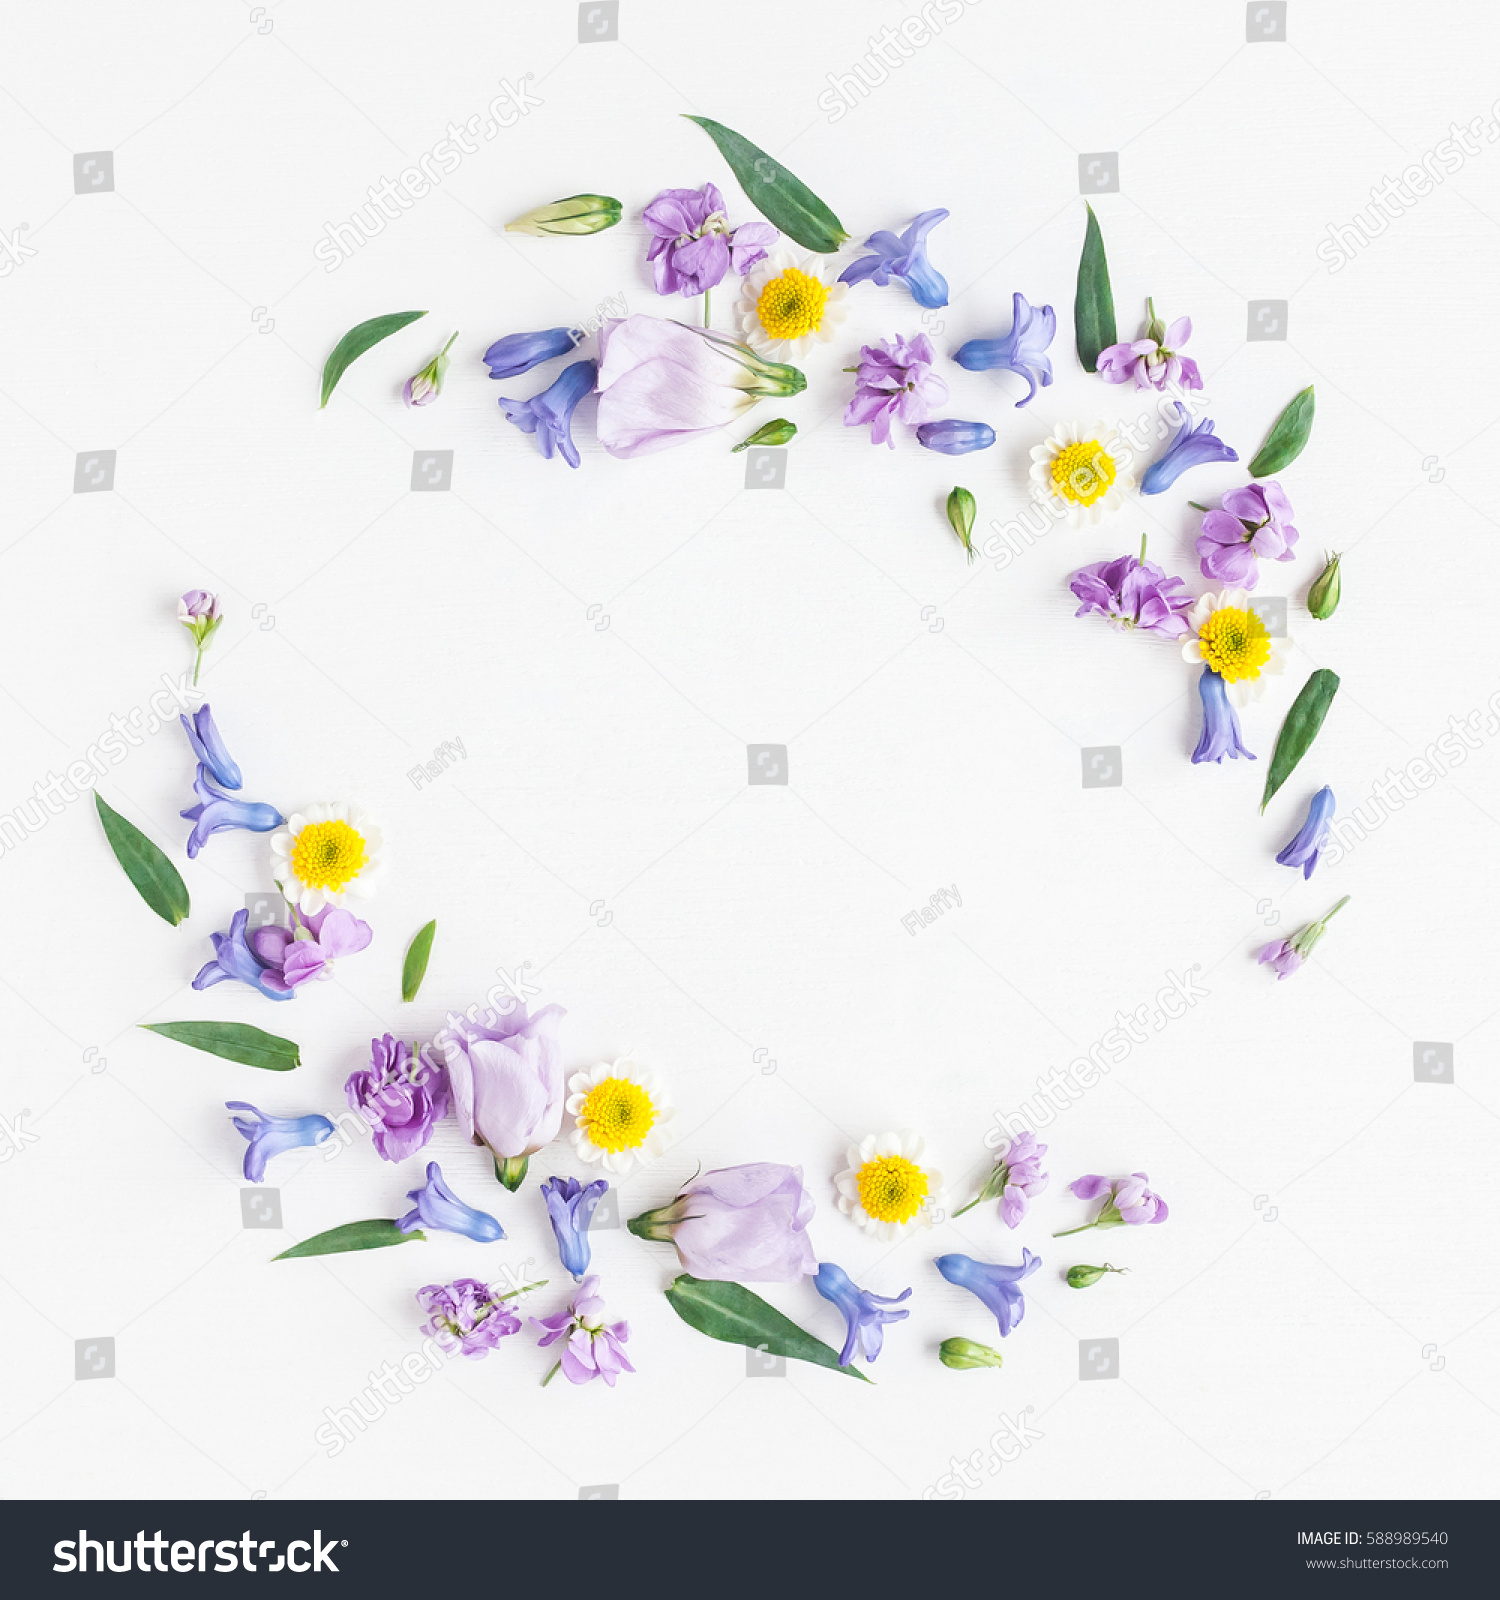 Flowers Composition Wreath Made Various Colorful Stock